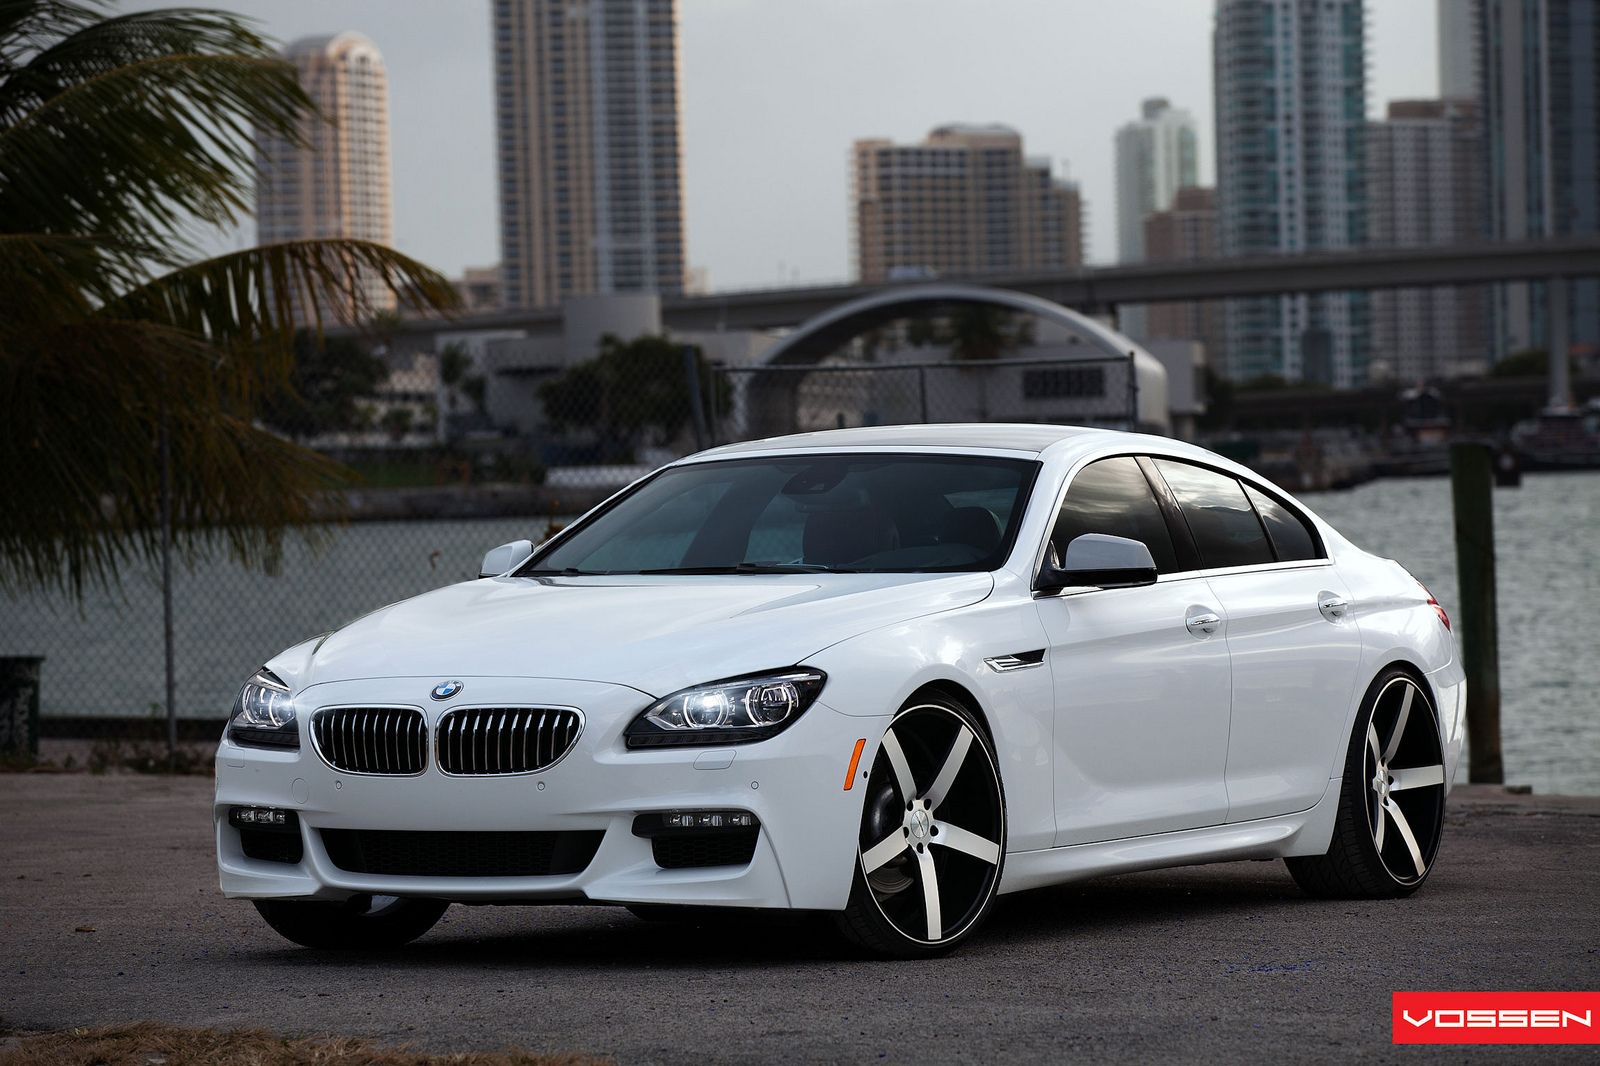 BMW 6 Series Gran Coupe on Vossen Wheels